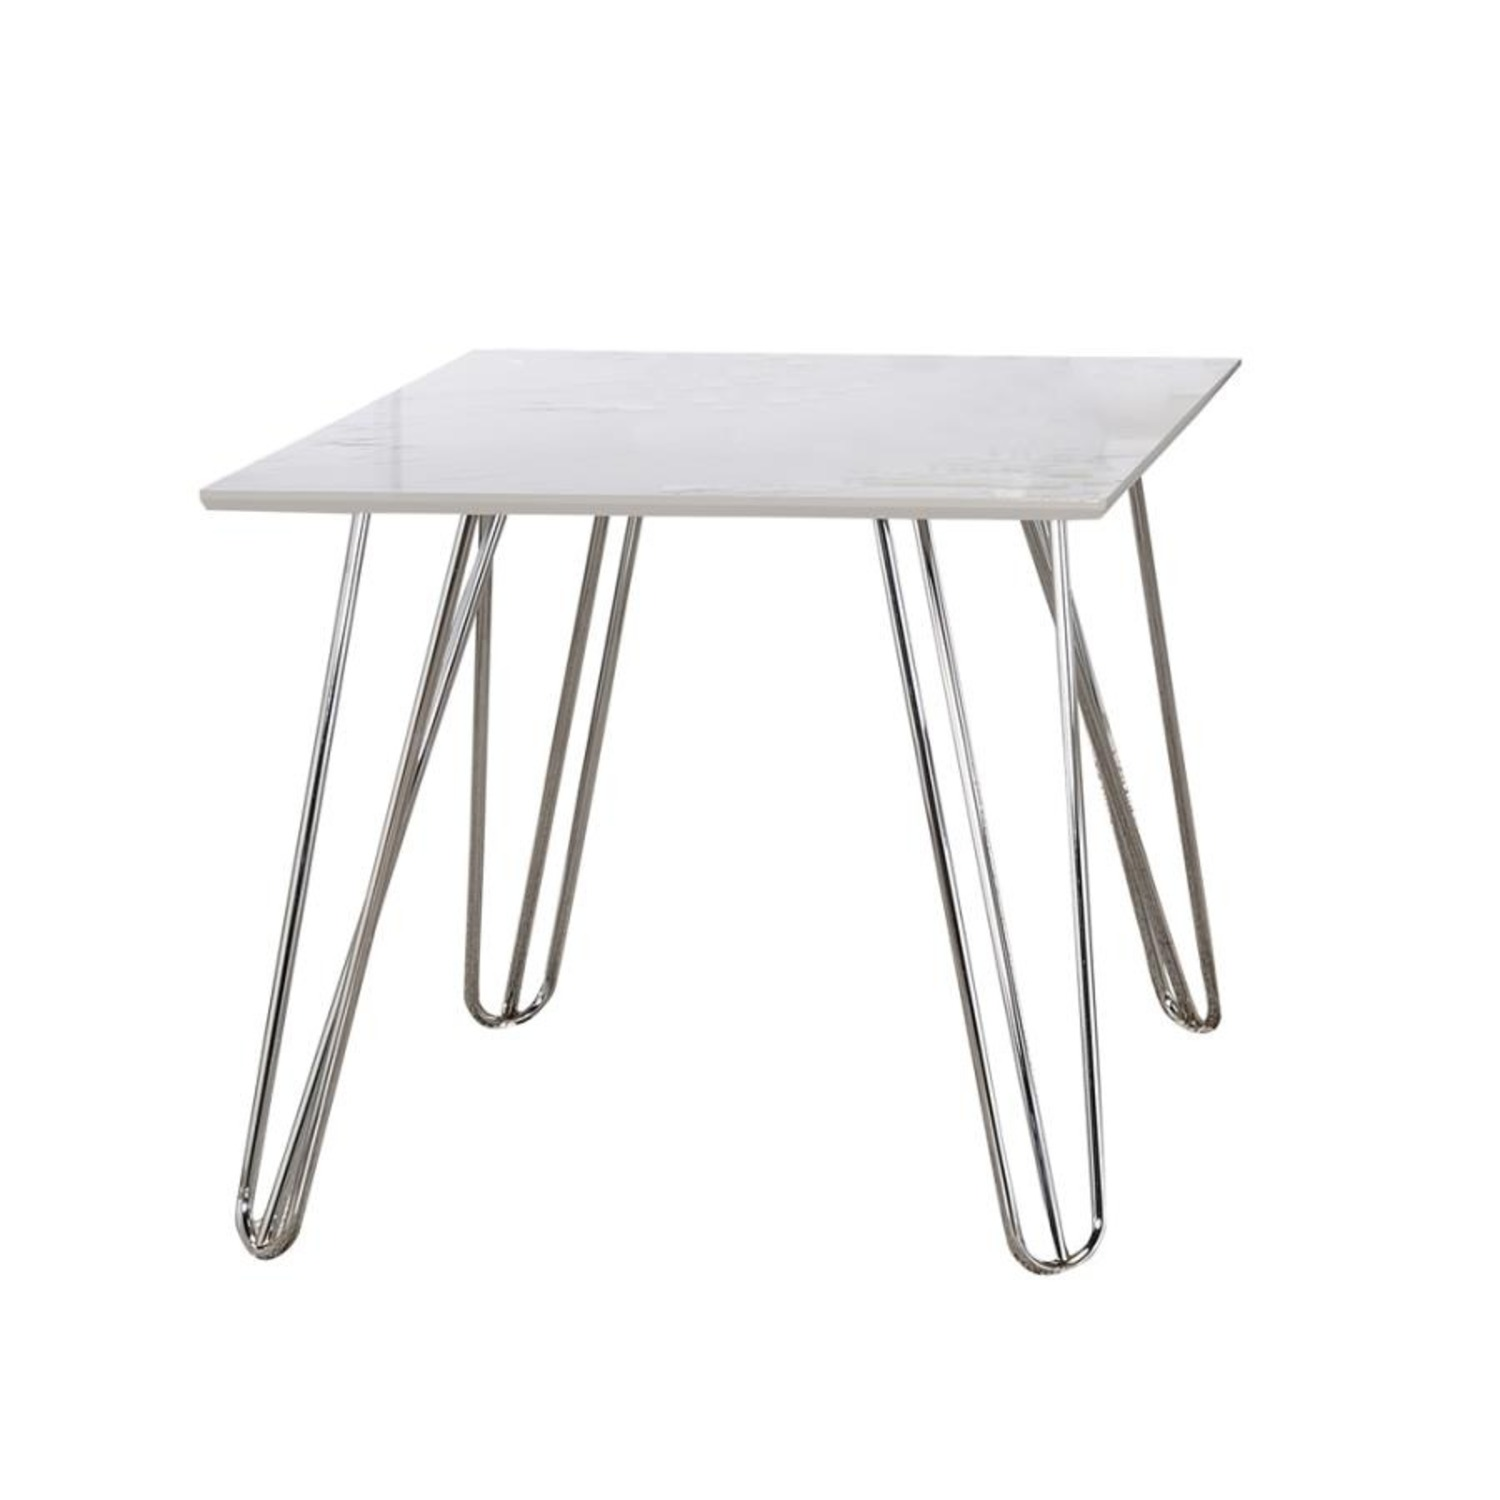 End Table In White Faux Marble Finish - image-0